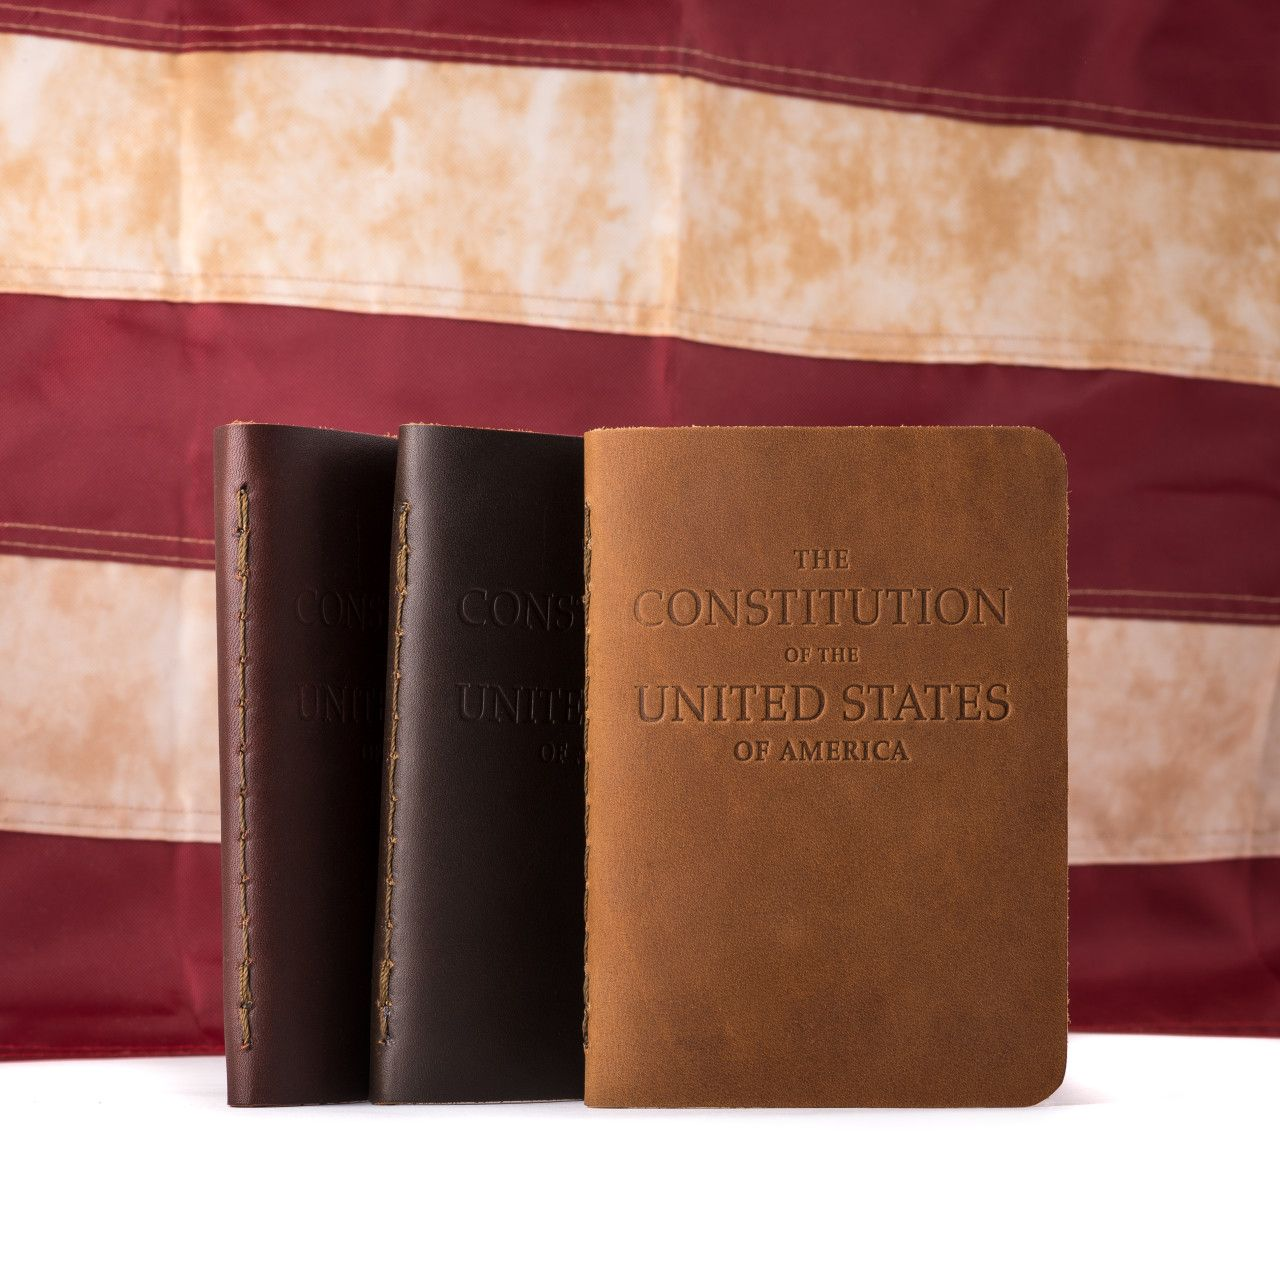 Set of the leather bound constitution in leather on the flag background